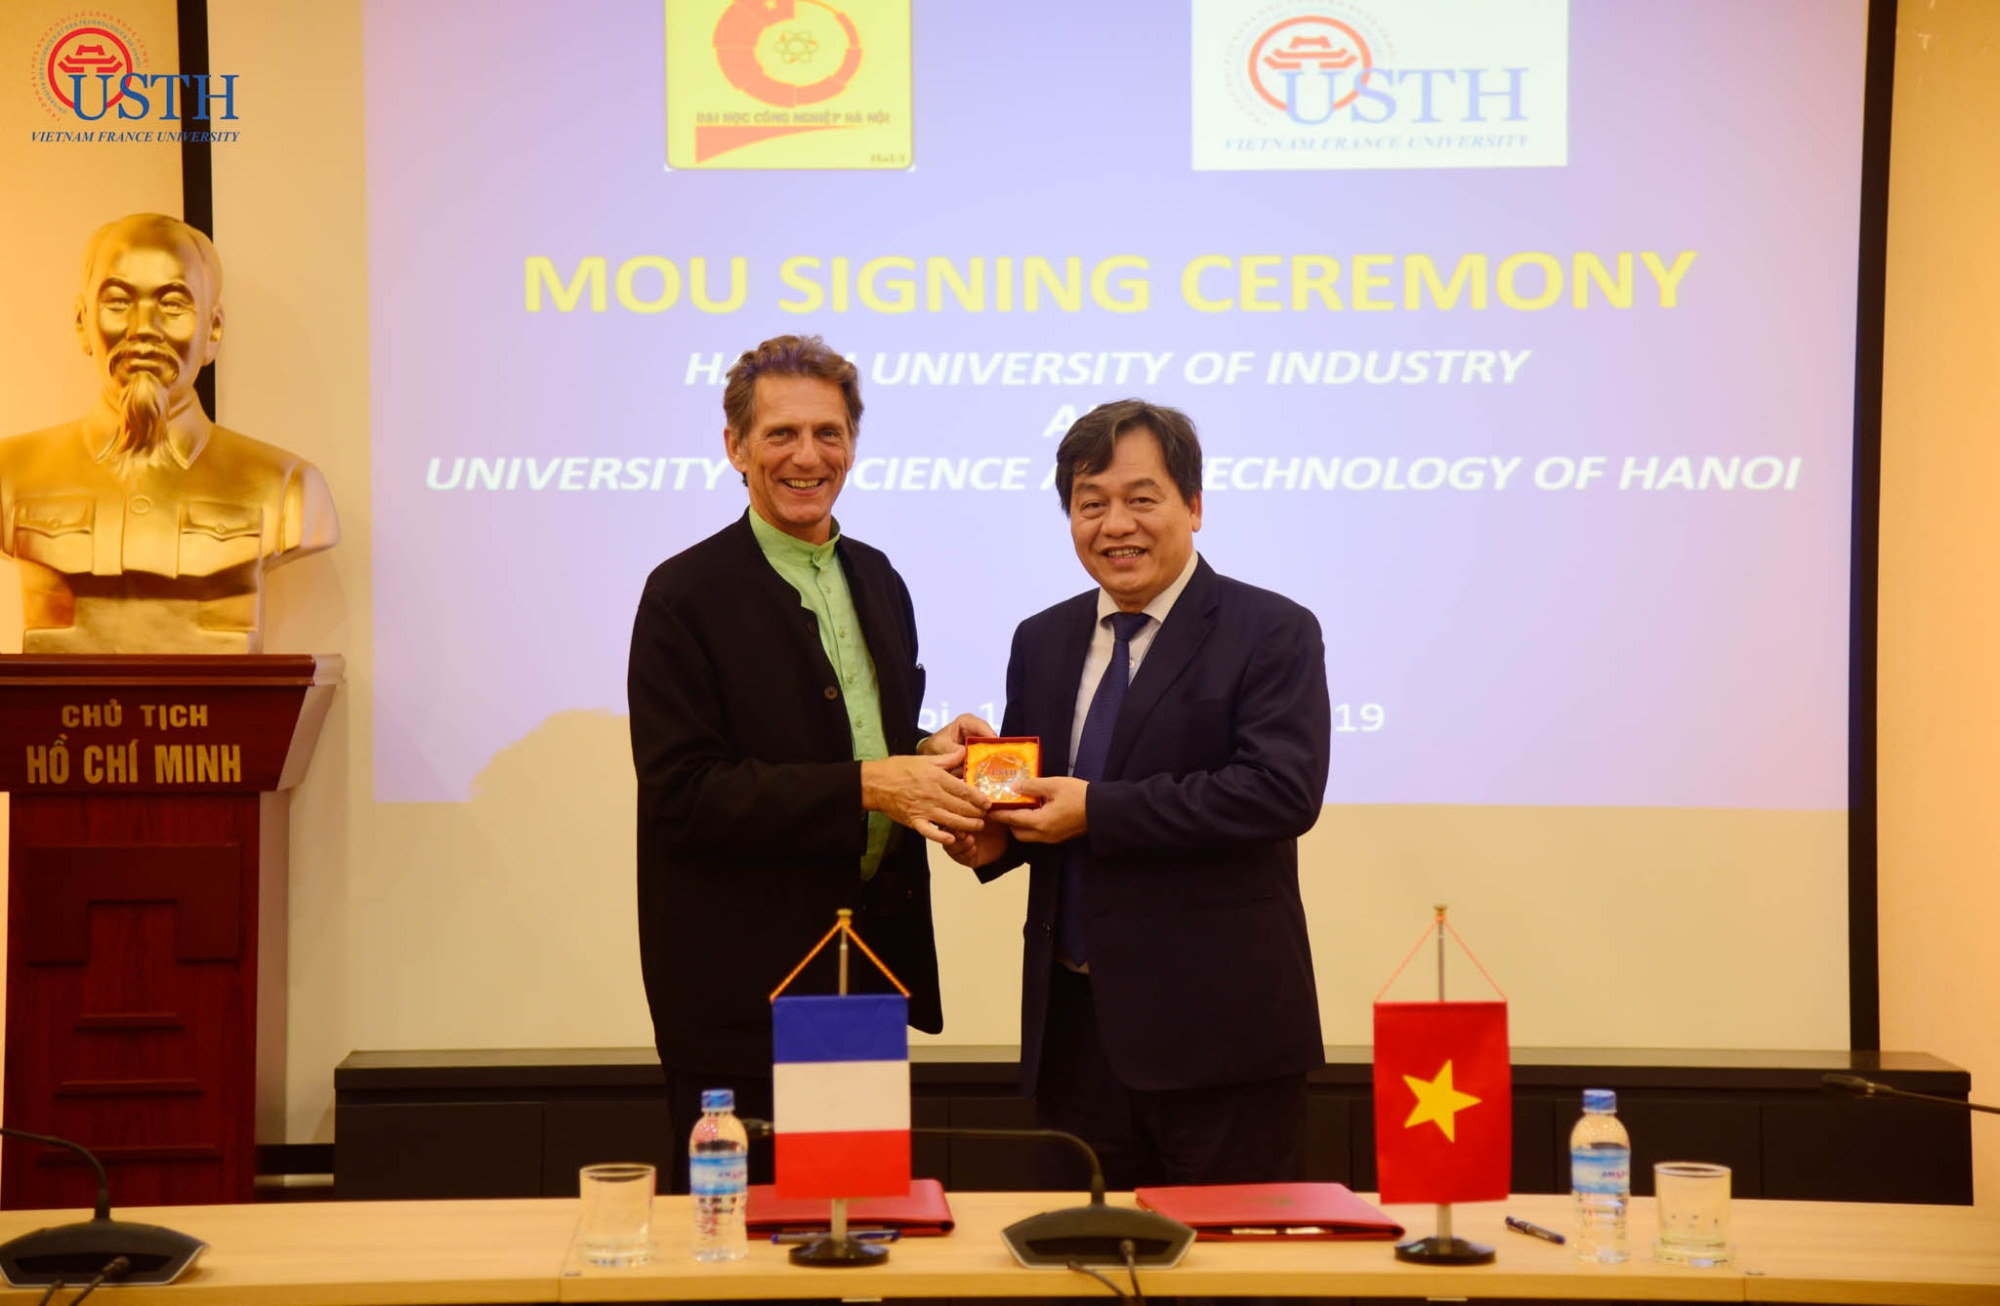 usth ky ket mou voi dai hoc cong nghiep ha noi 5